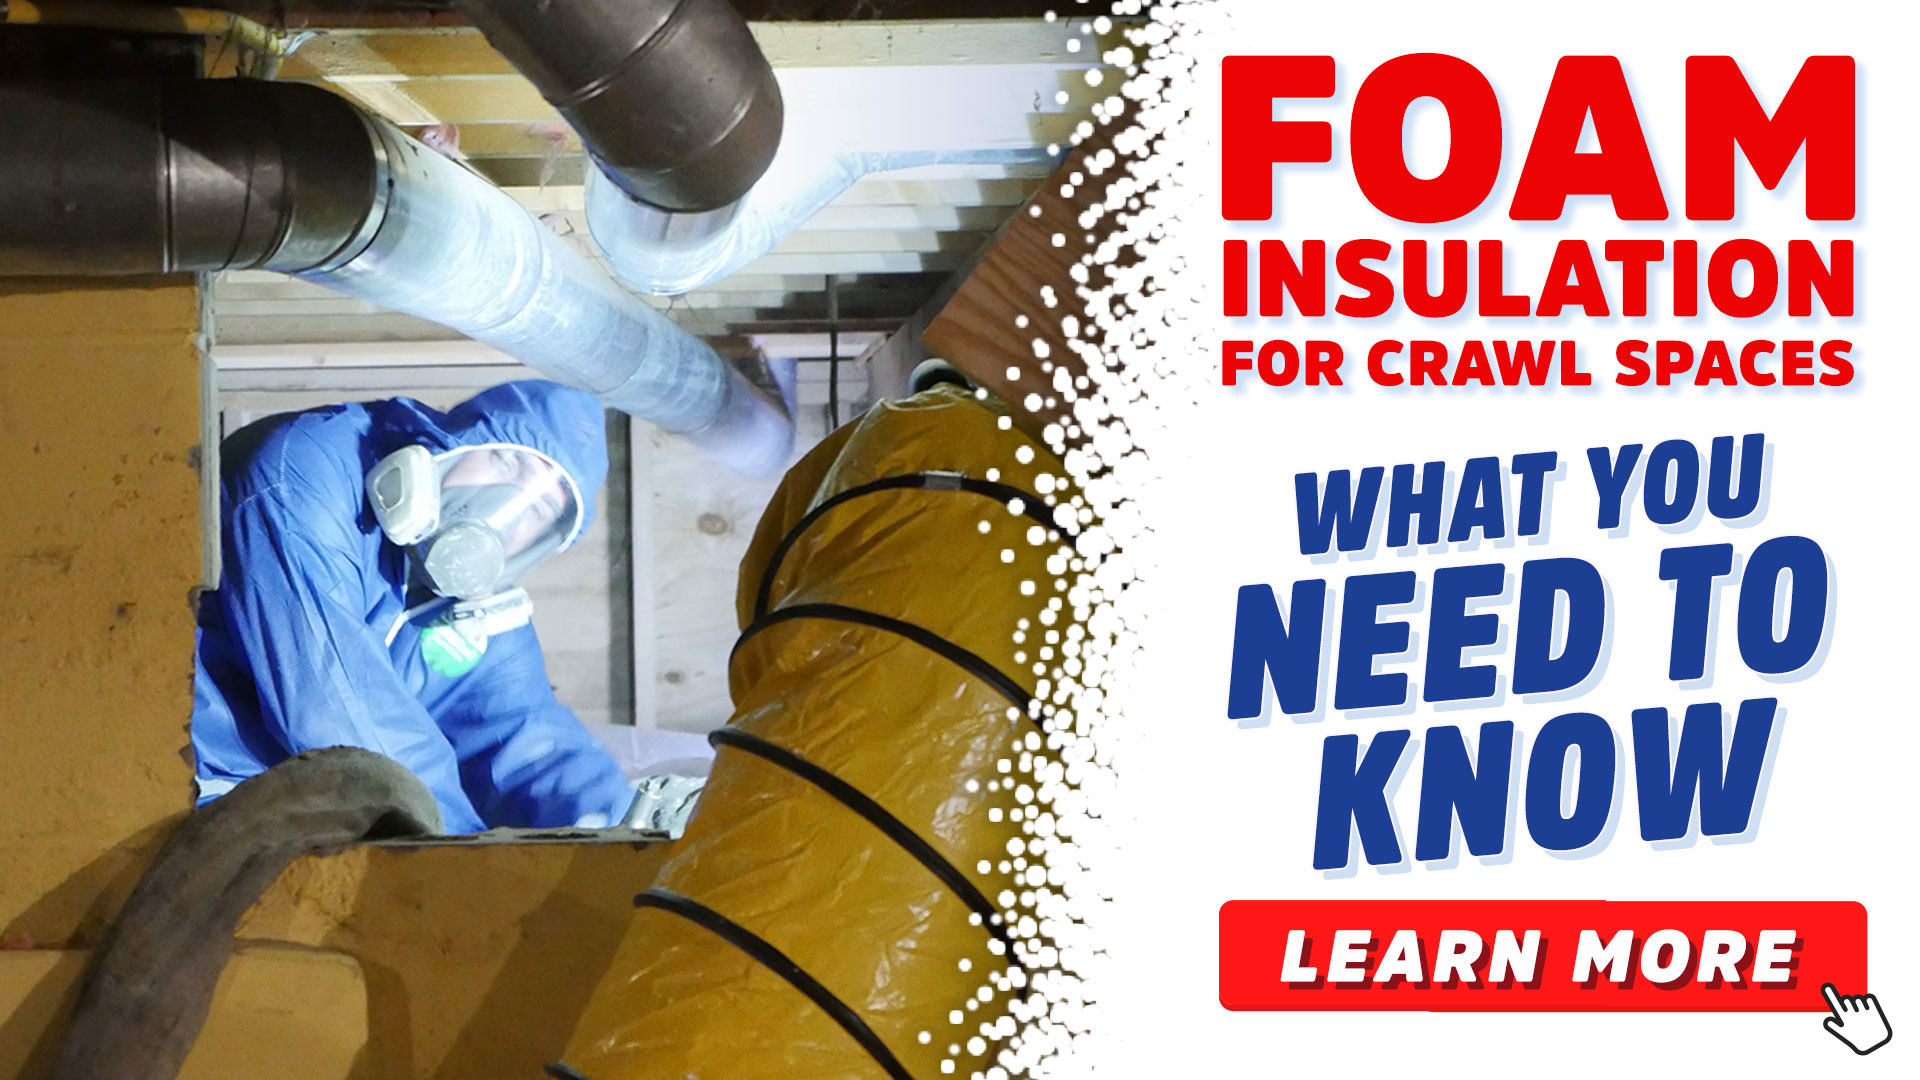 1920x1080_CrawlSpace_AssignmentSelling